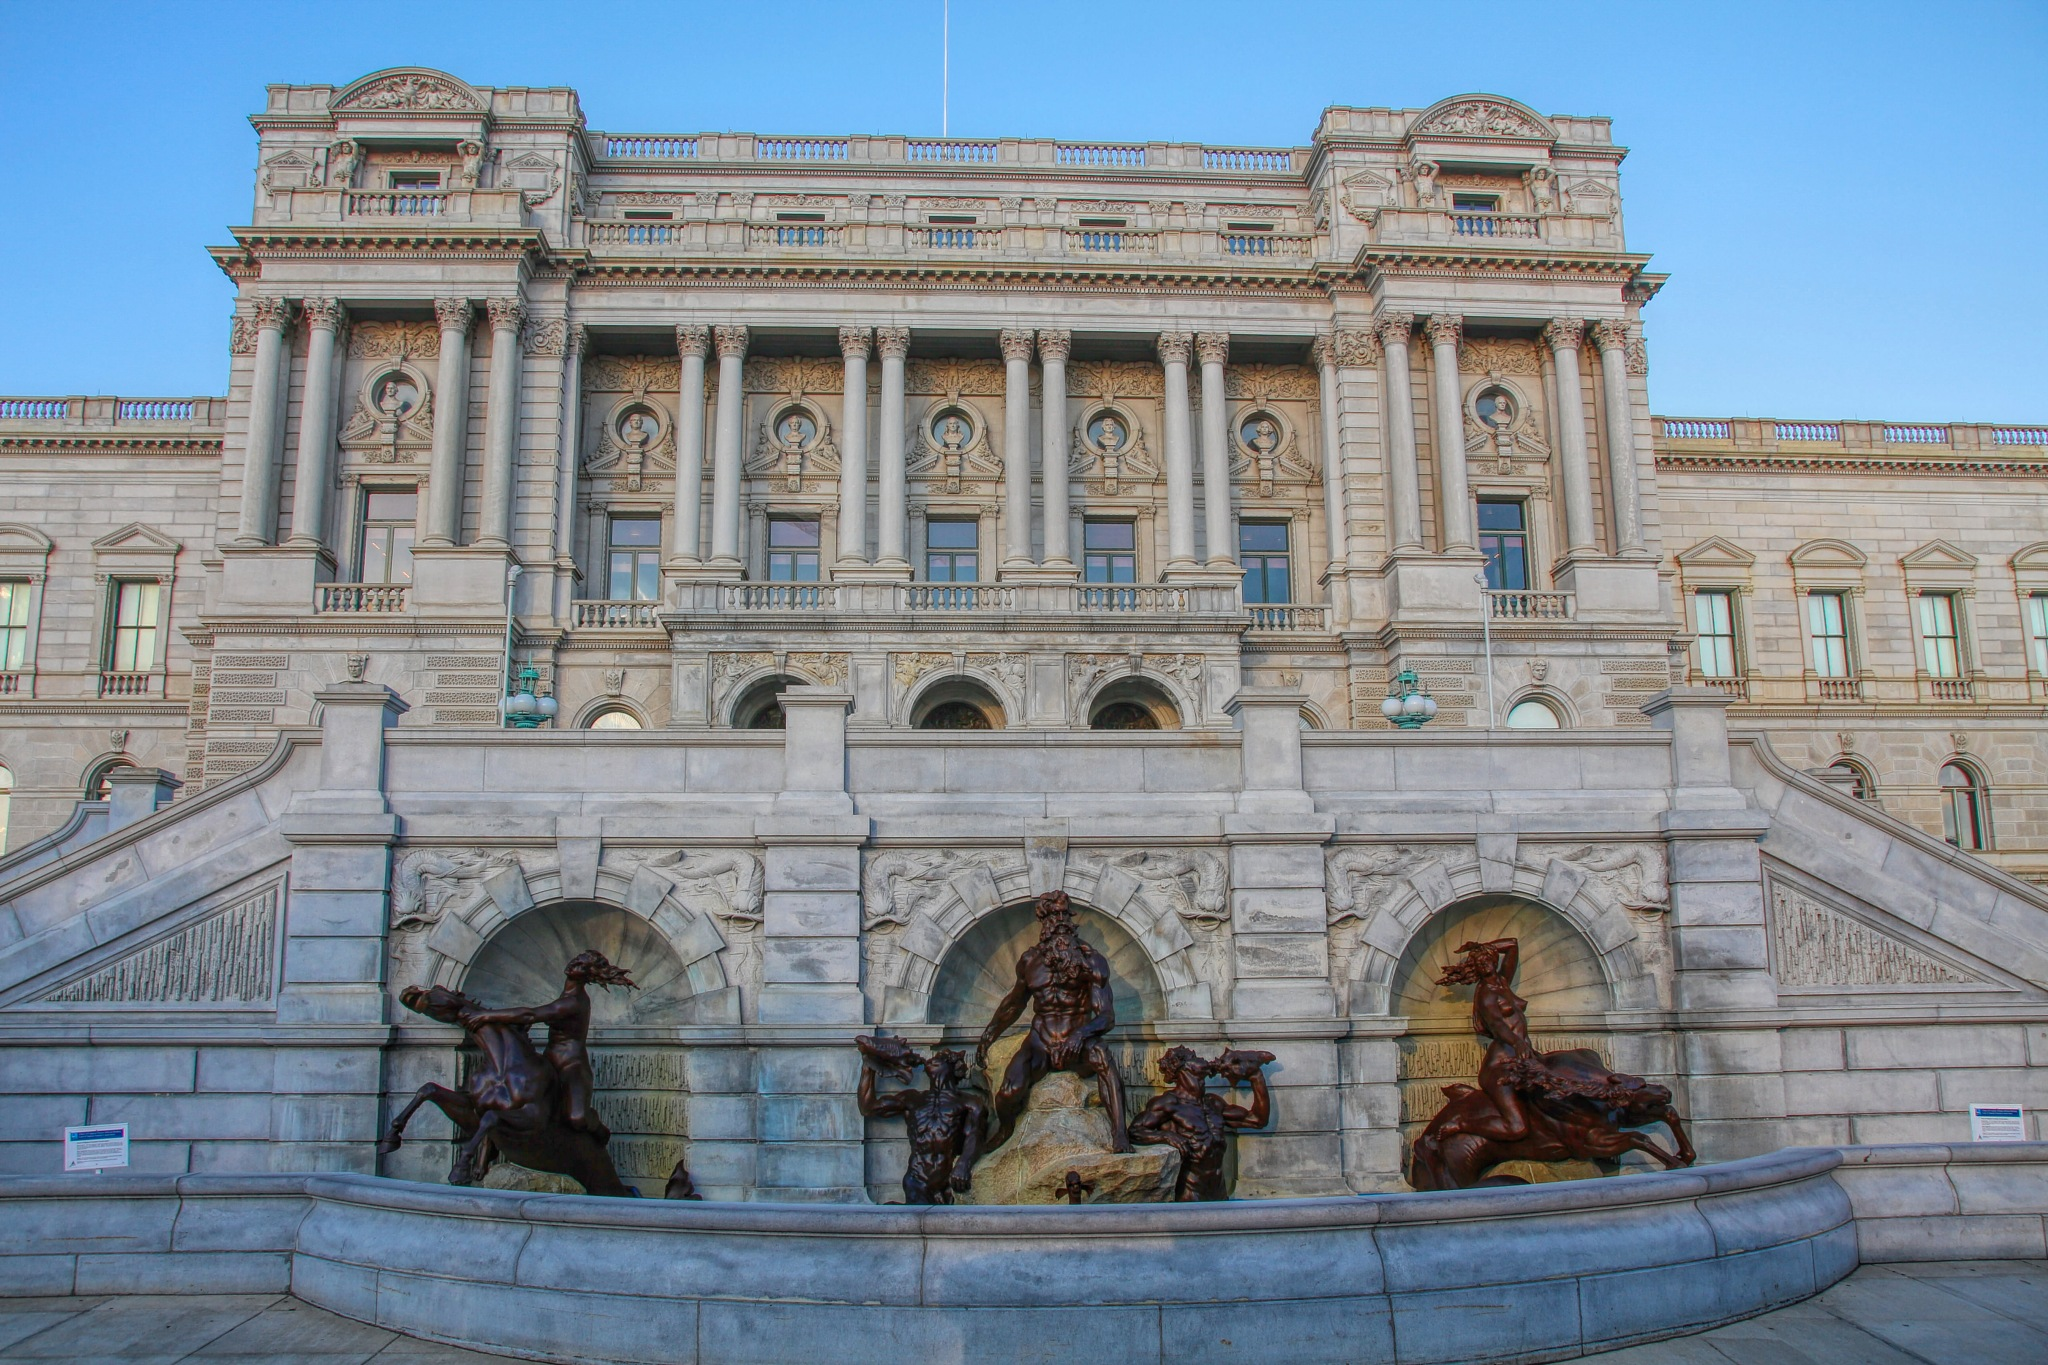 Library of Congress Statues by Brian Dill